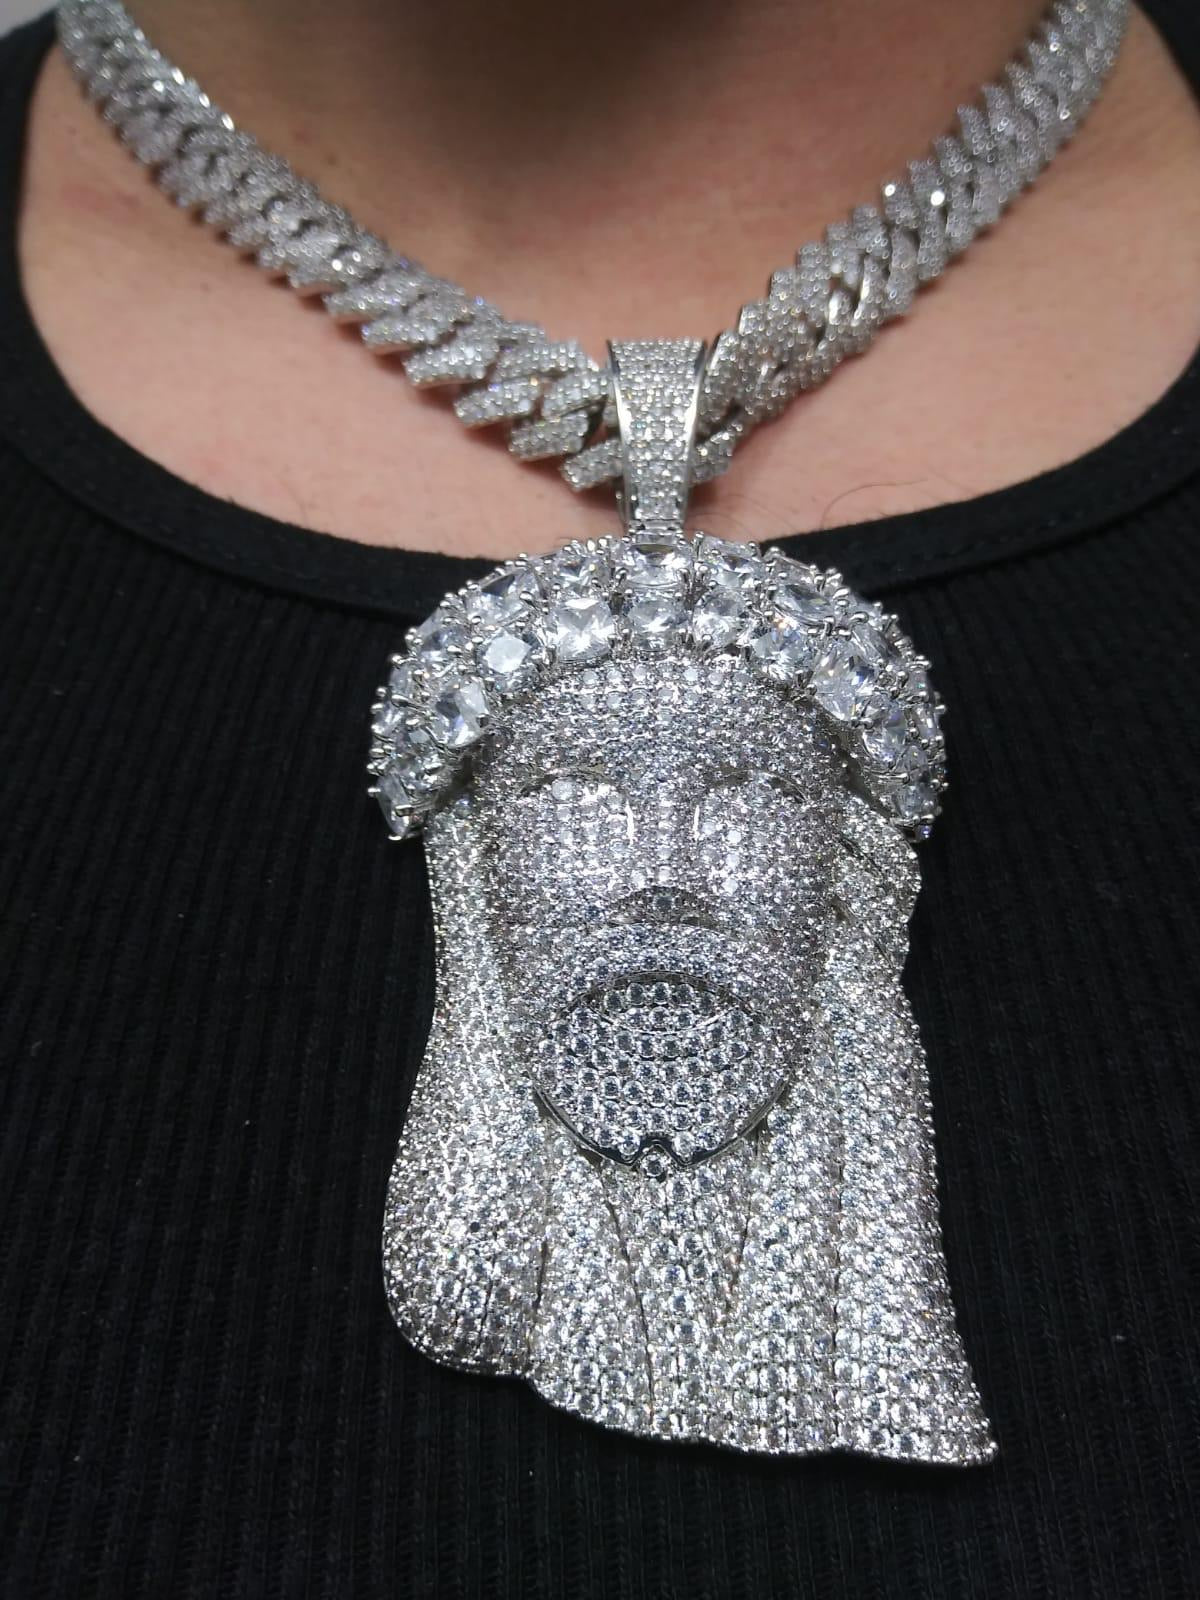 Chain and Jesus pendant